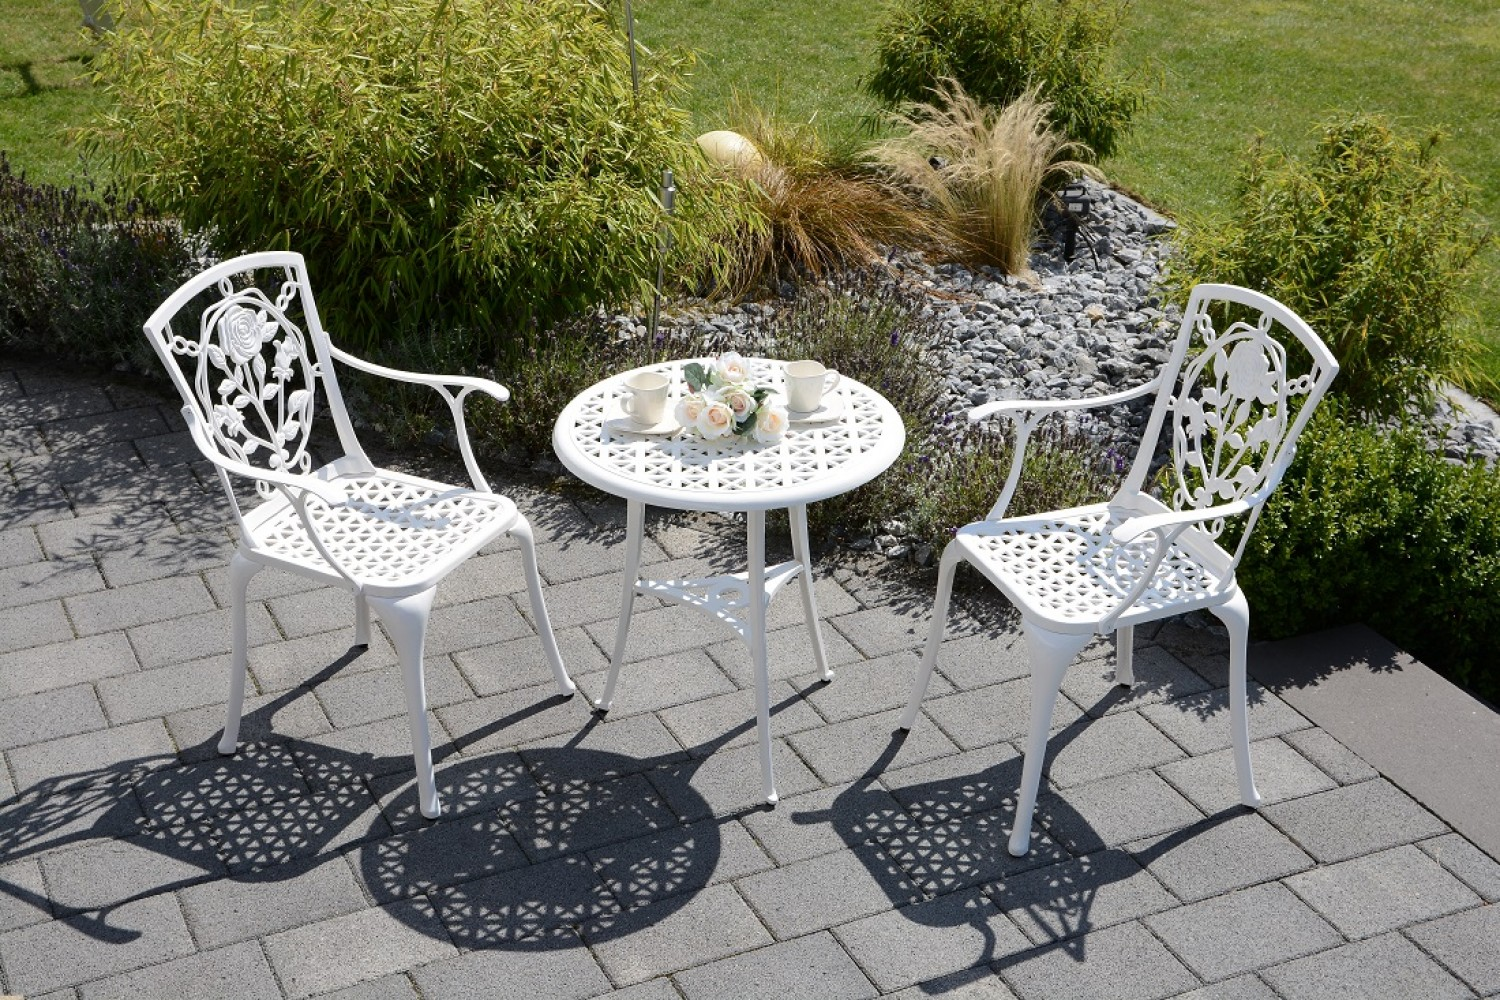 alu guss bistro set rose weiss batavia gartenm bel onlineshop f r hochwertige gartenm be. Black Bedroom Furniture Sets. Home Design Ideas